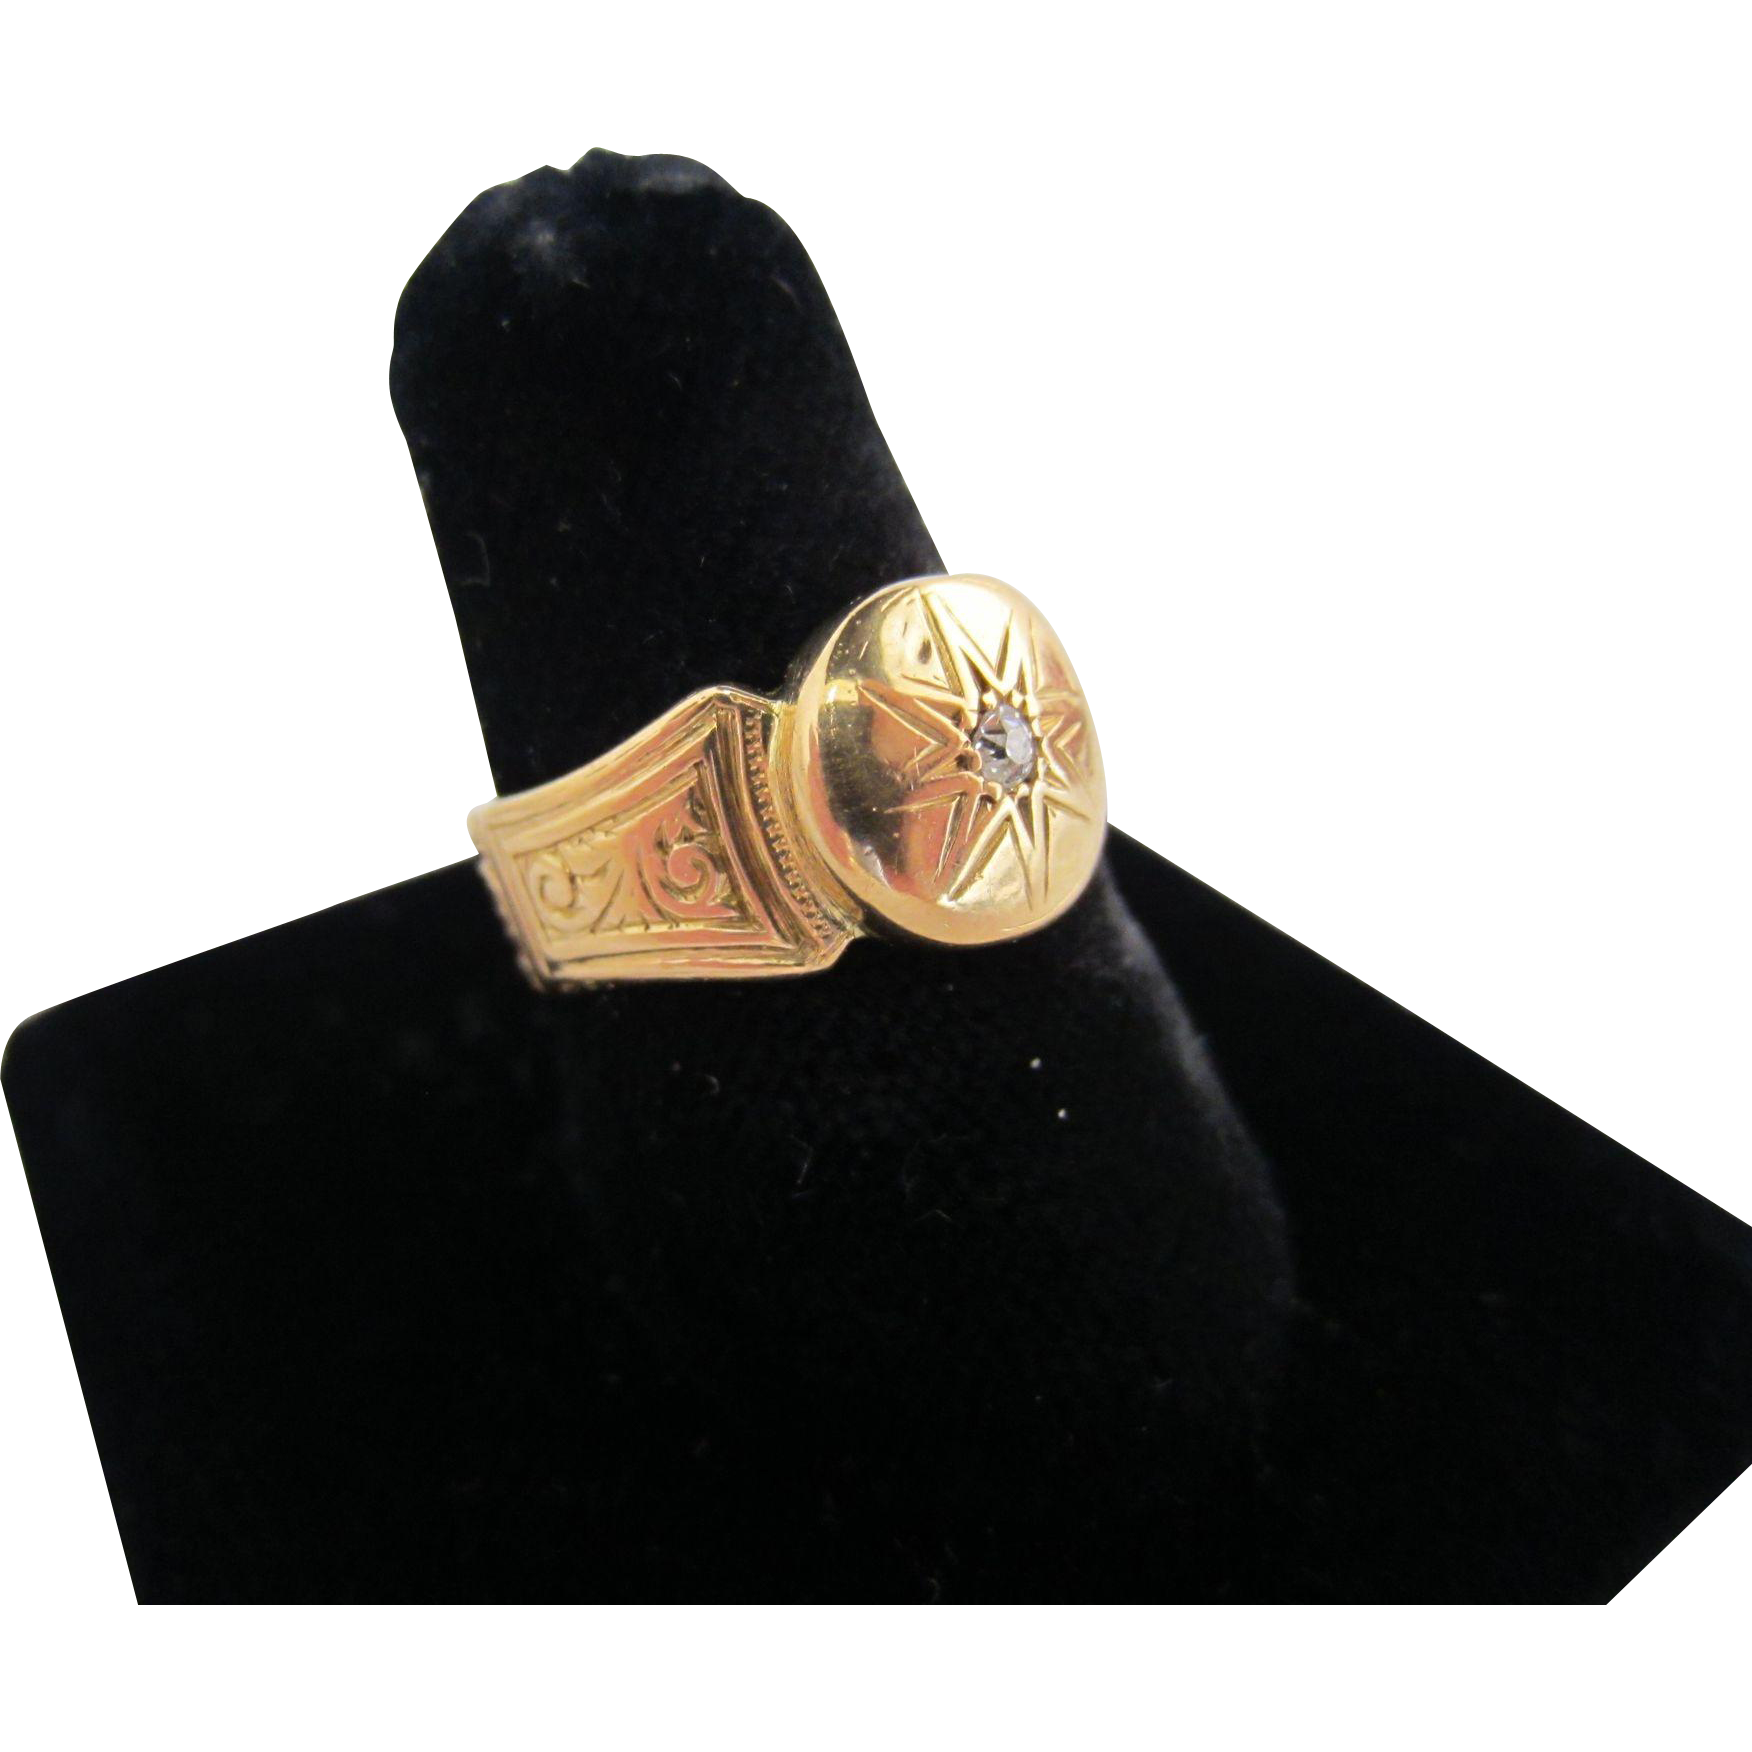 18k Yellow Gold and Diamond Ring - Birmingham 1846